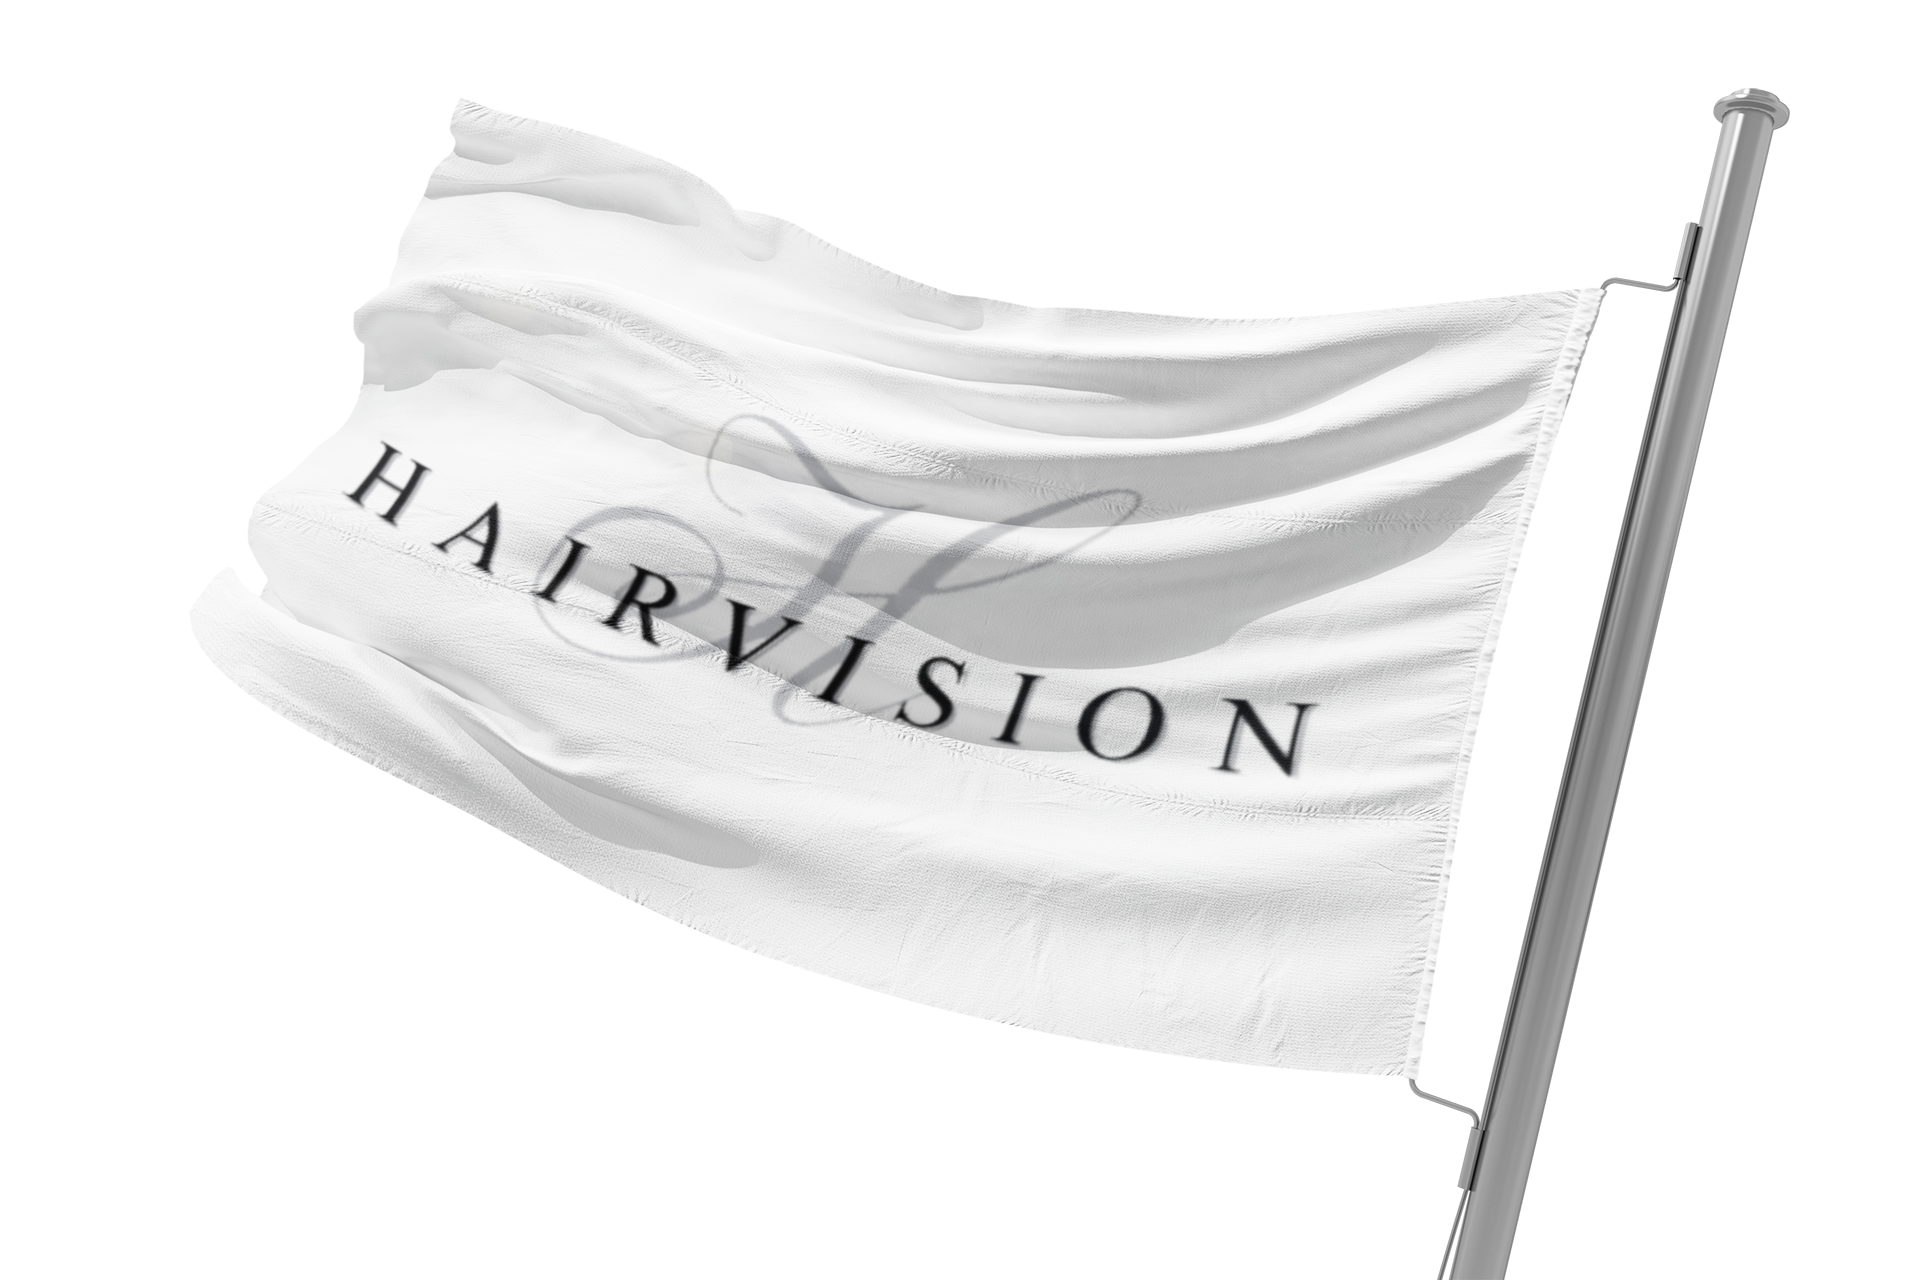 mockup-of-a-waving-flag-attached-to-a-steel-pole-1349-el